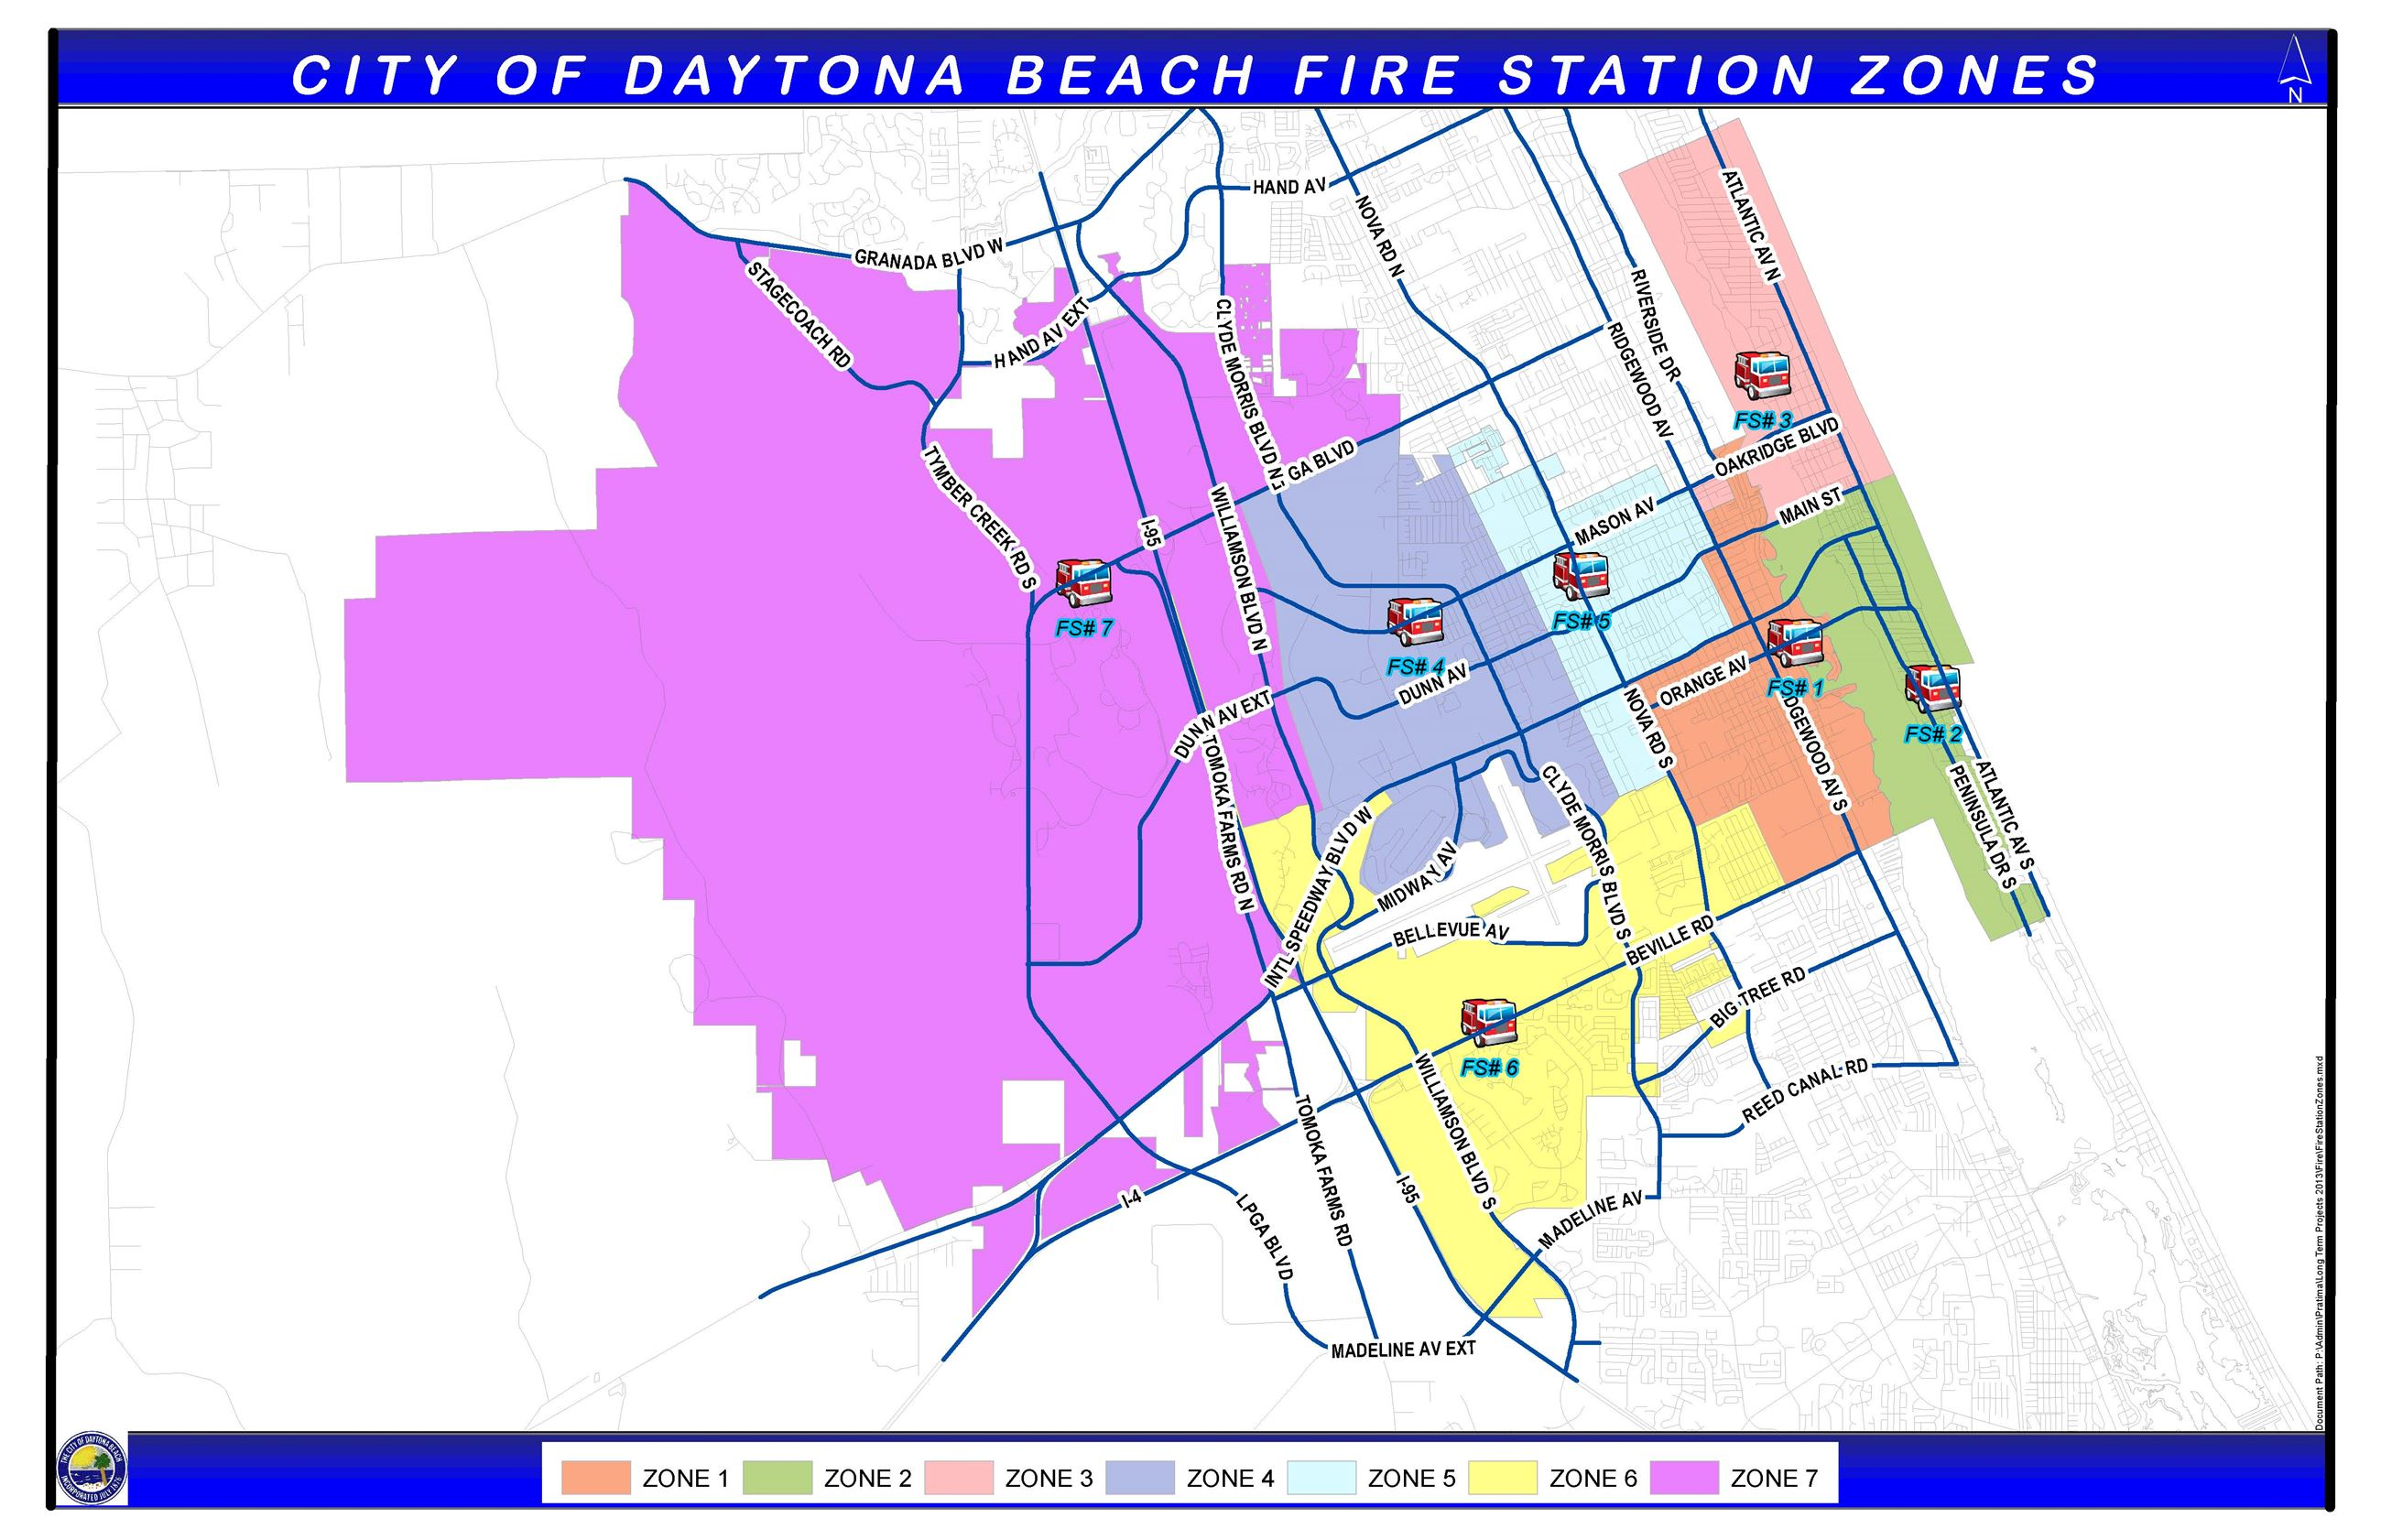 Fire Station Zones